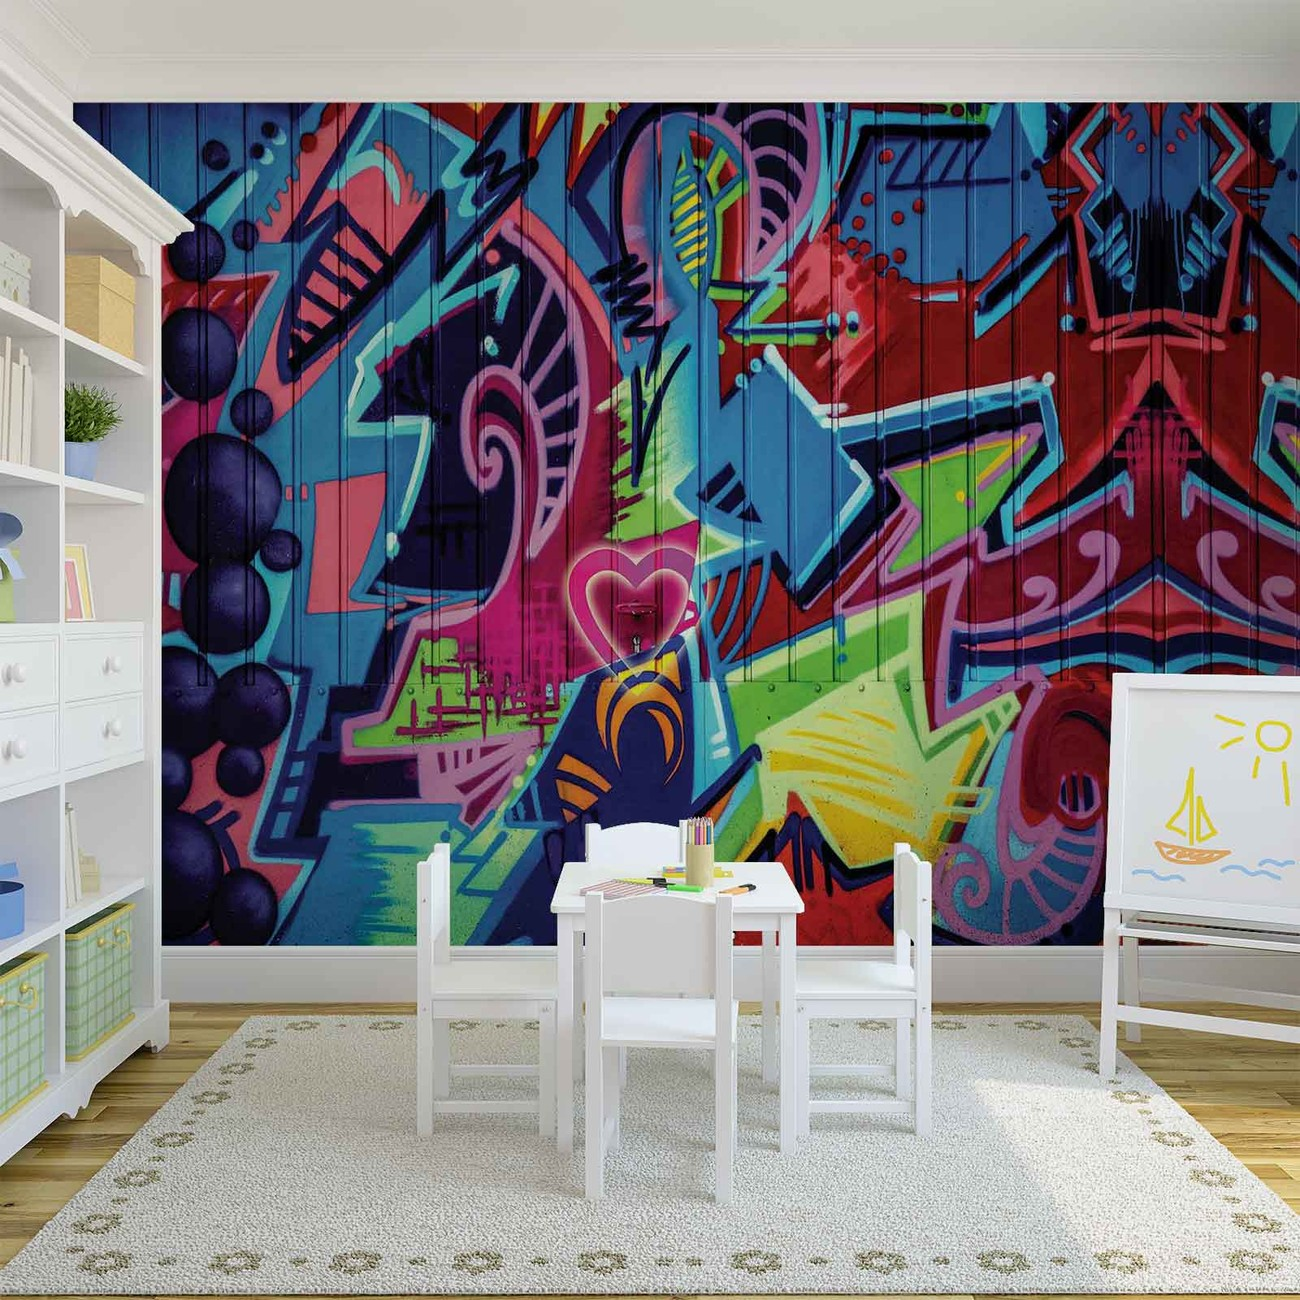 graffiti street art poster mural papier peint acheter. Black Bedroom Furniture Sets. Home Design Ideas